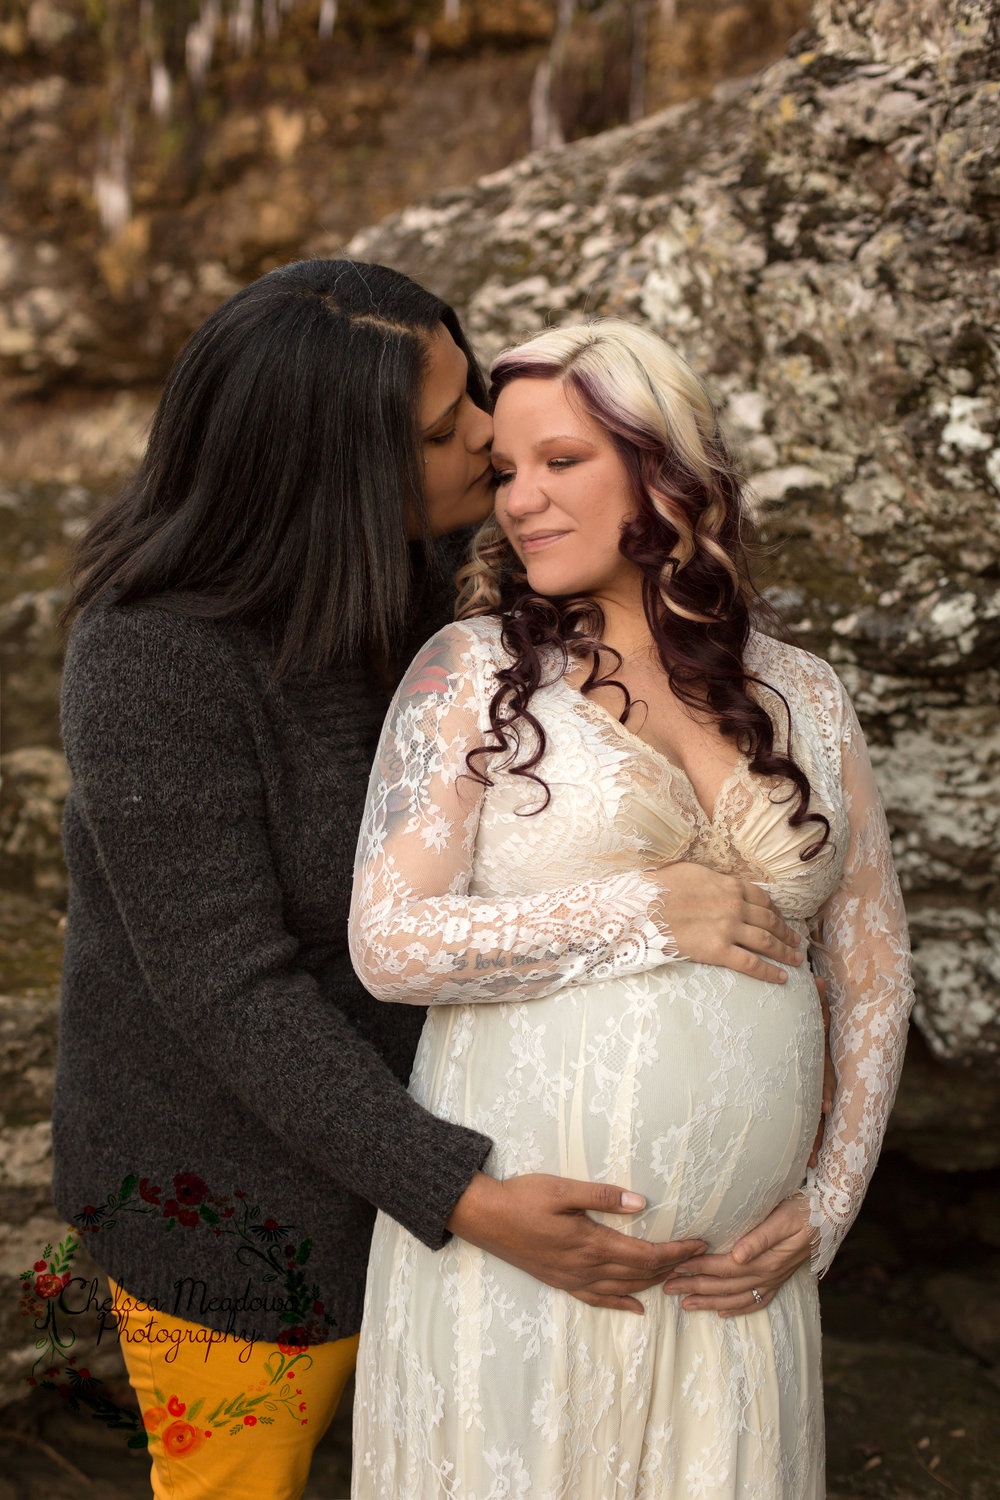 Olivia & Kim Maternity Session - Nashville Maternity Photographer - Chelsea Meadows Photography (62).jpg